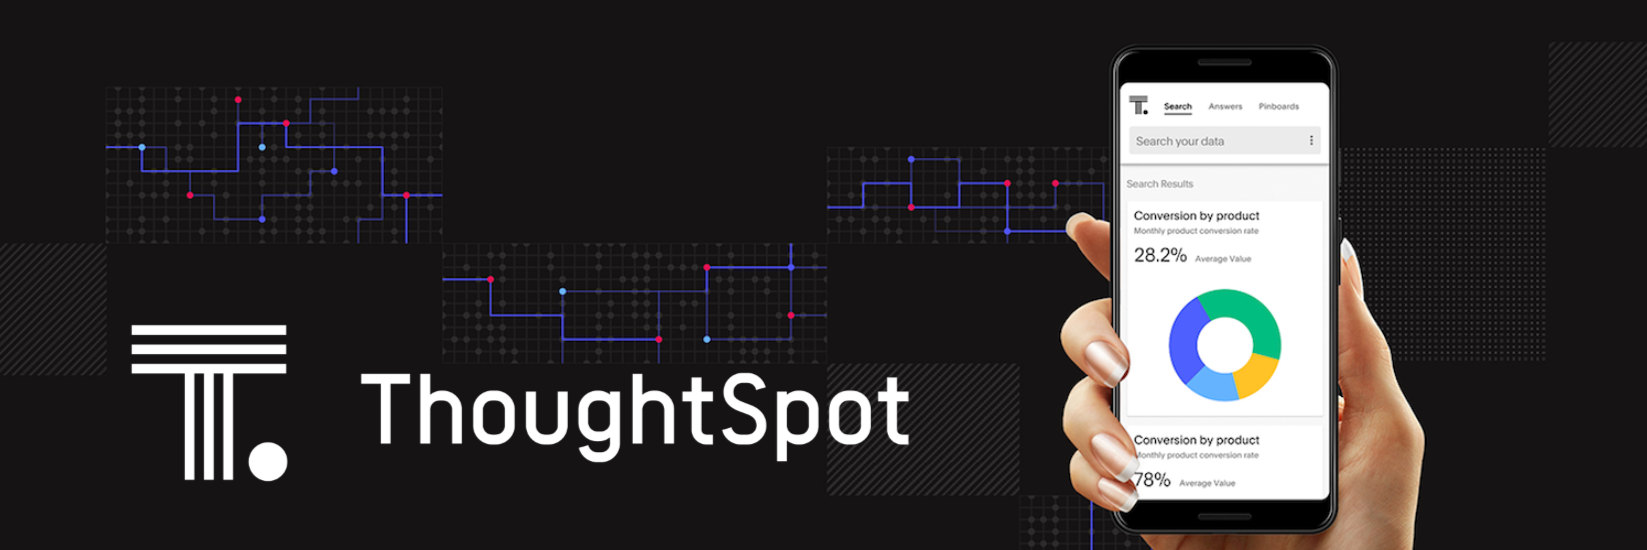 ThoughtSpot background-header